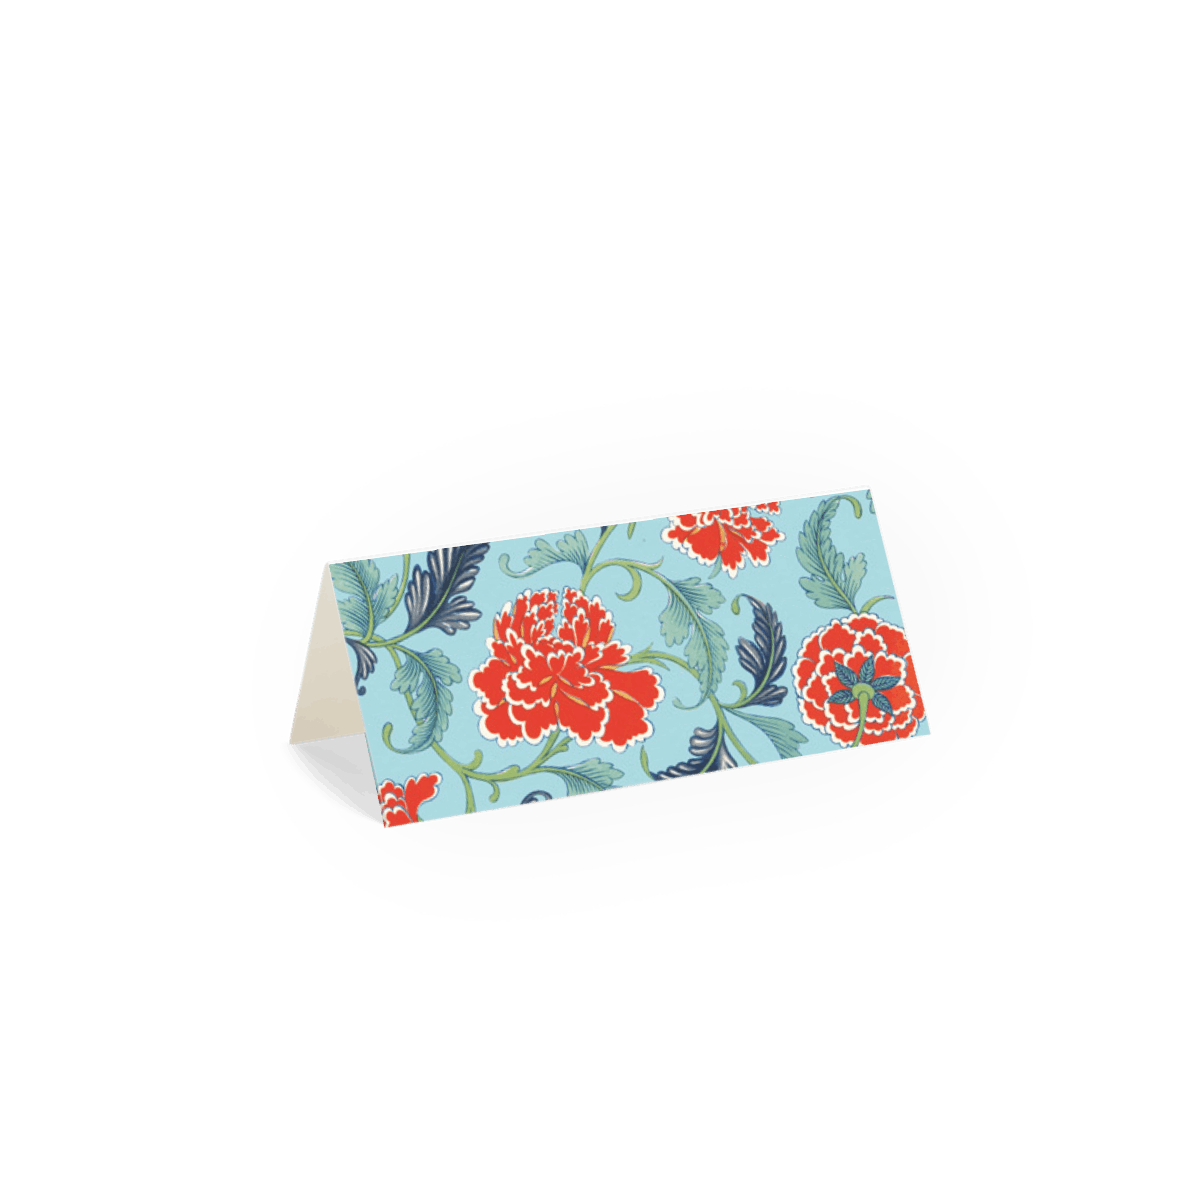 Https%3a%2f%2fwww.papier.com%2fproduct image%2f82547%2f15%2fred carnations 19986 arriere 1562152831.png?ixlib=rb 1.1